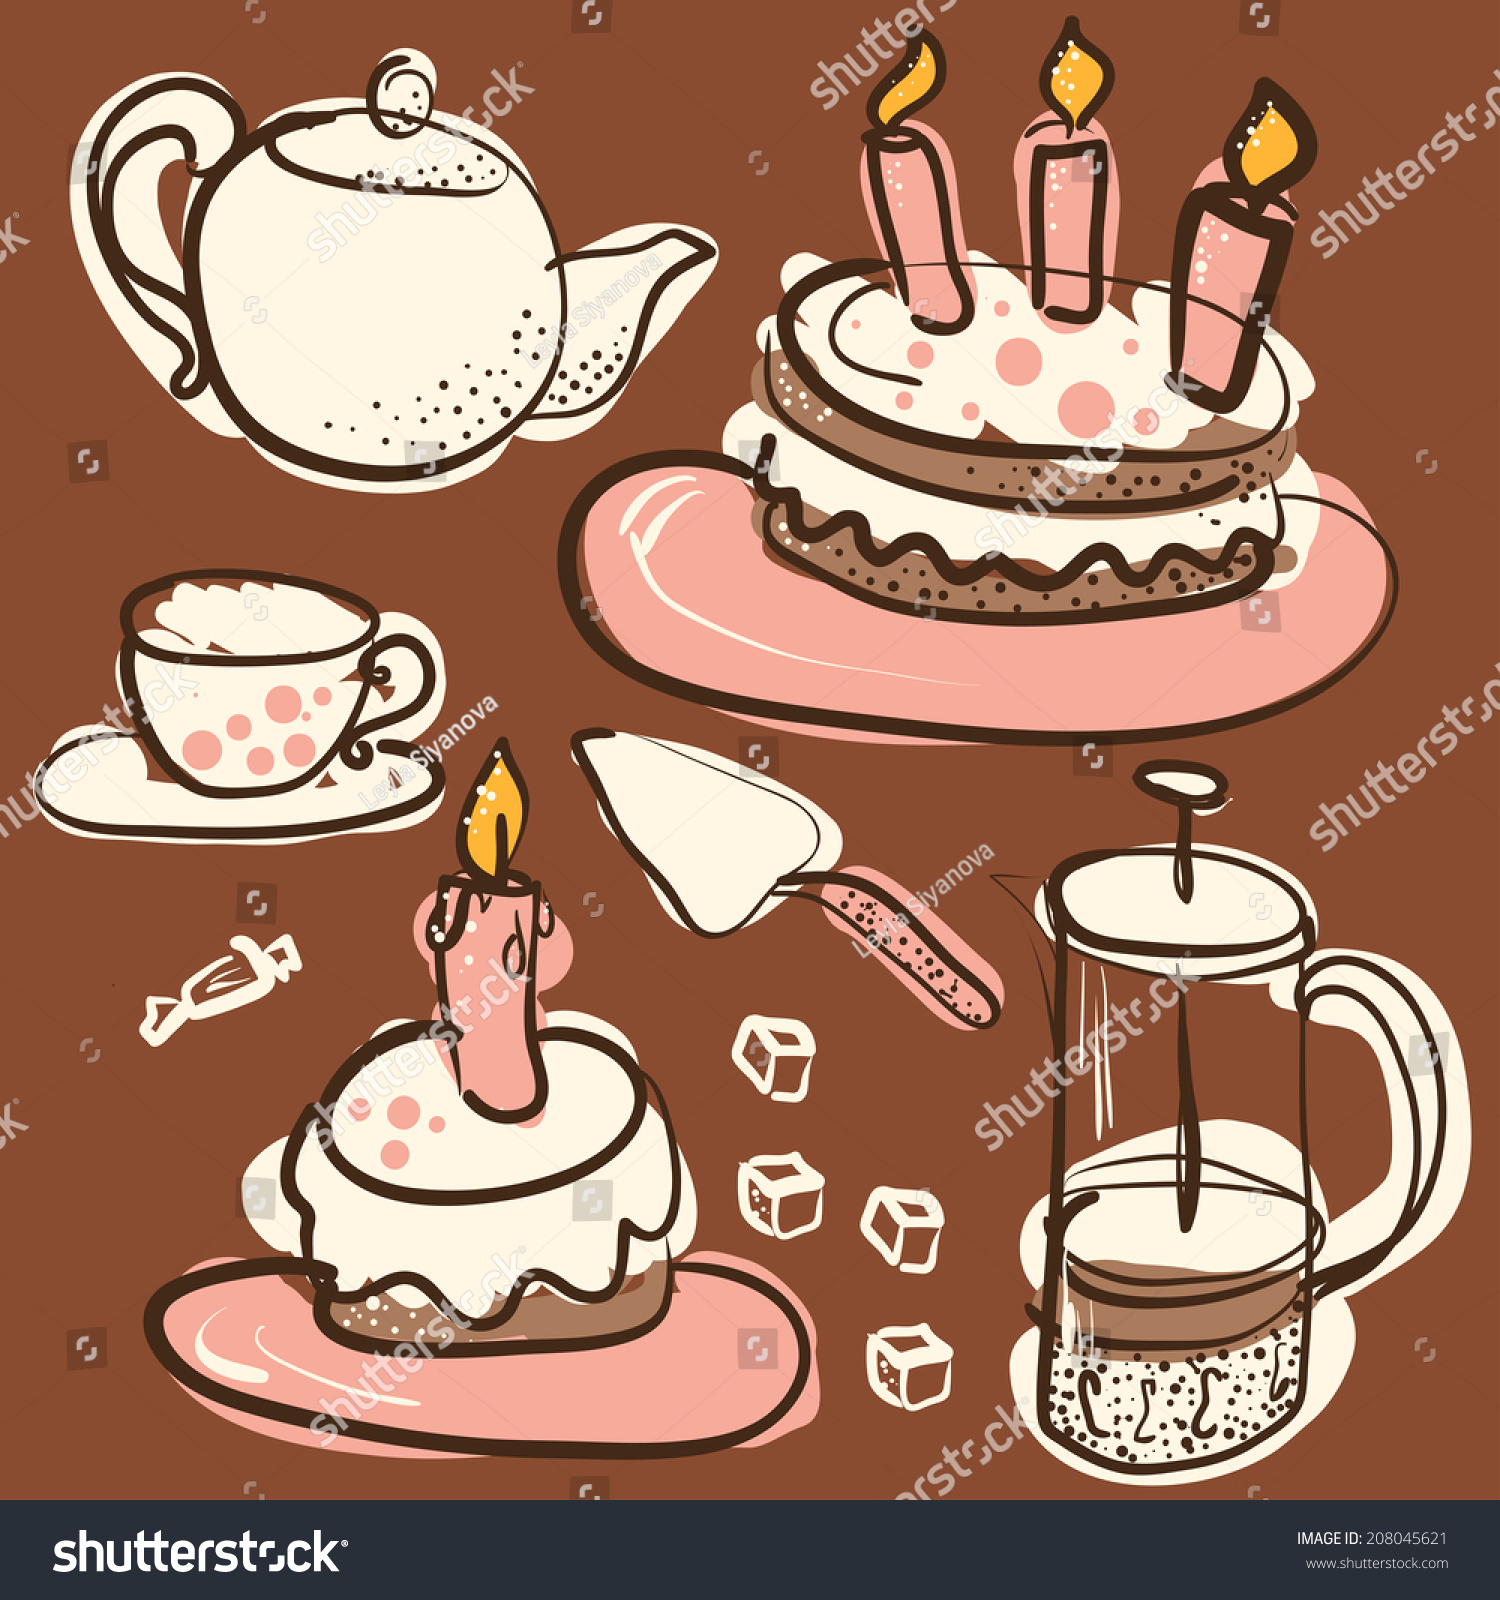 Coffee Sweets Doodles Collection Birthday Cakeholiday Background